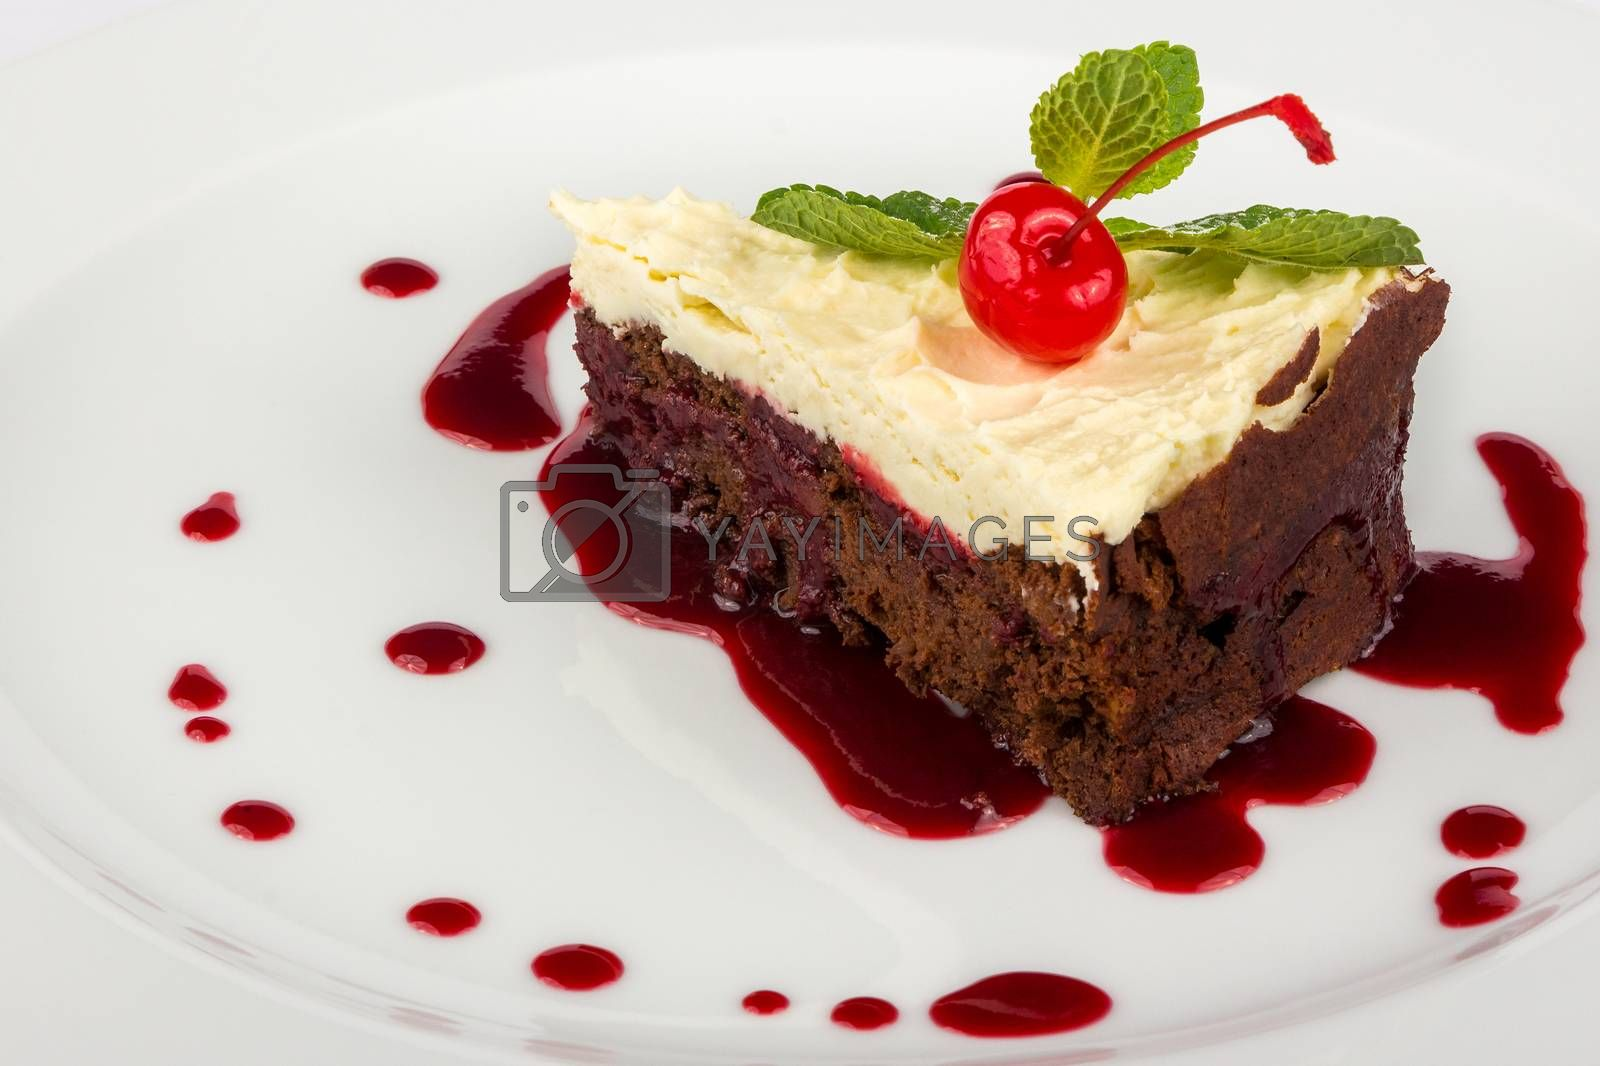 chocolate cake with mascarpone and cherry by Pellinni